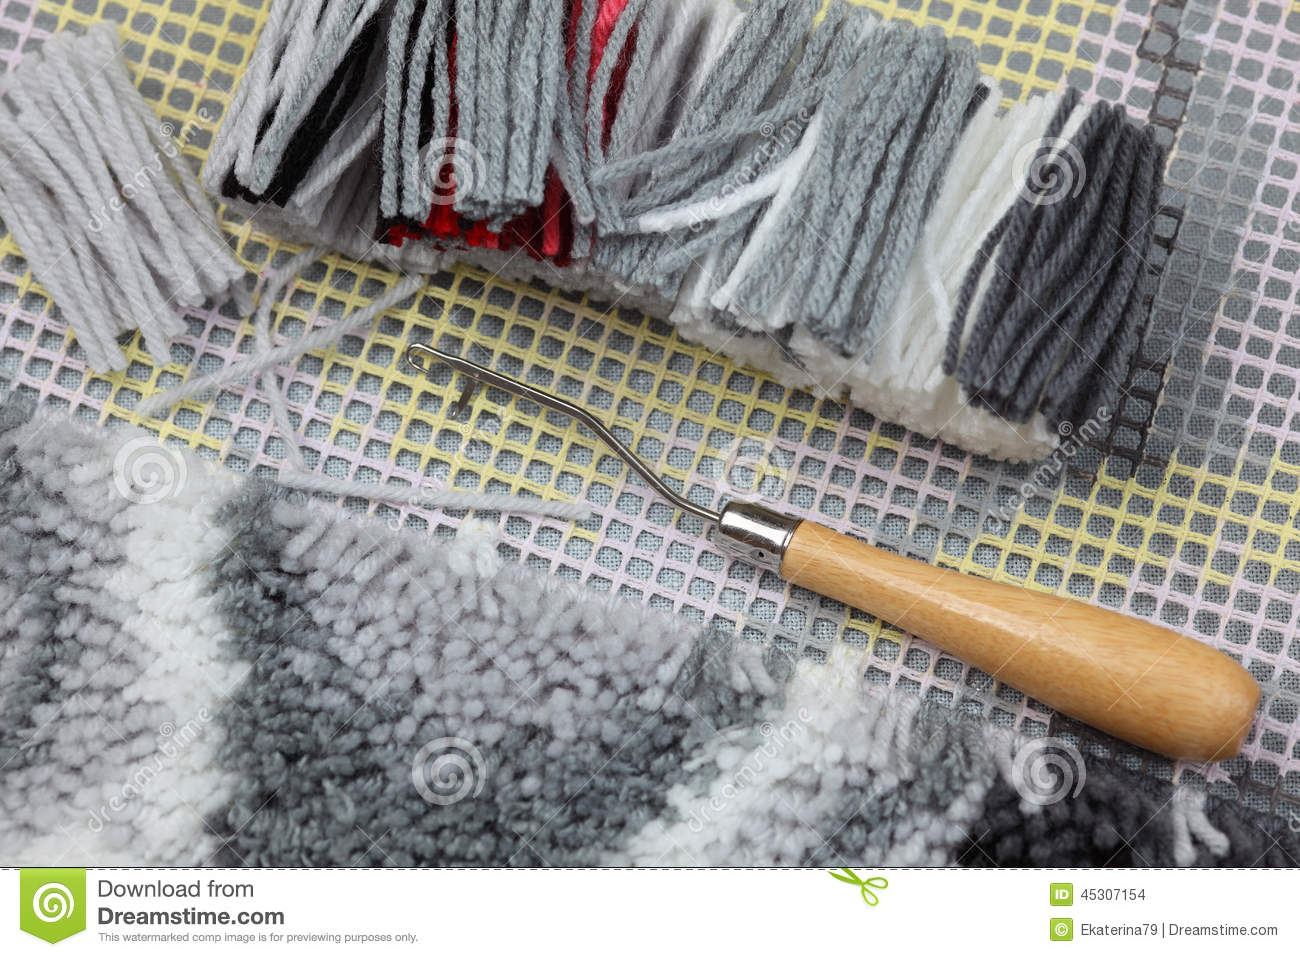 Crochet De Verrou Tissage Fait Main De Tapis Photo Stock